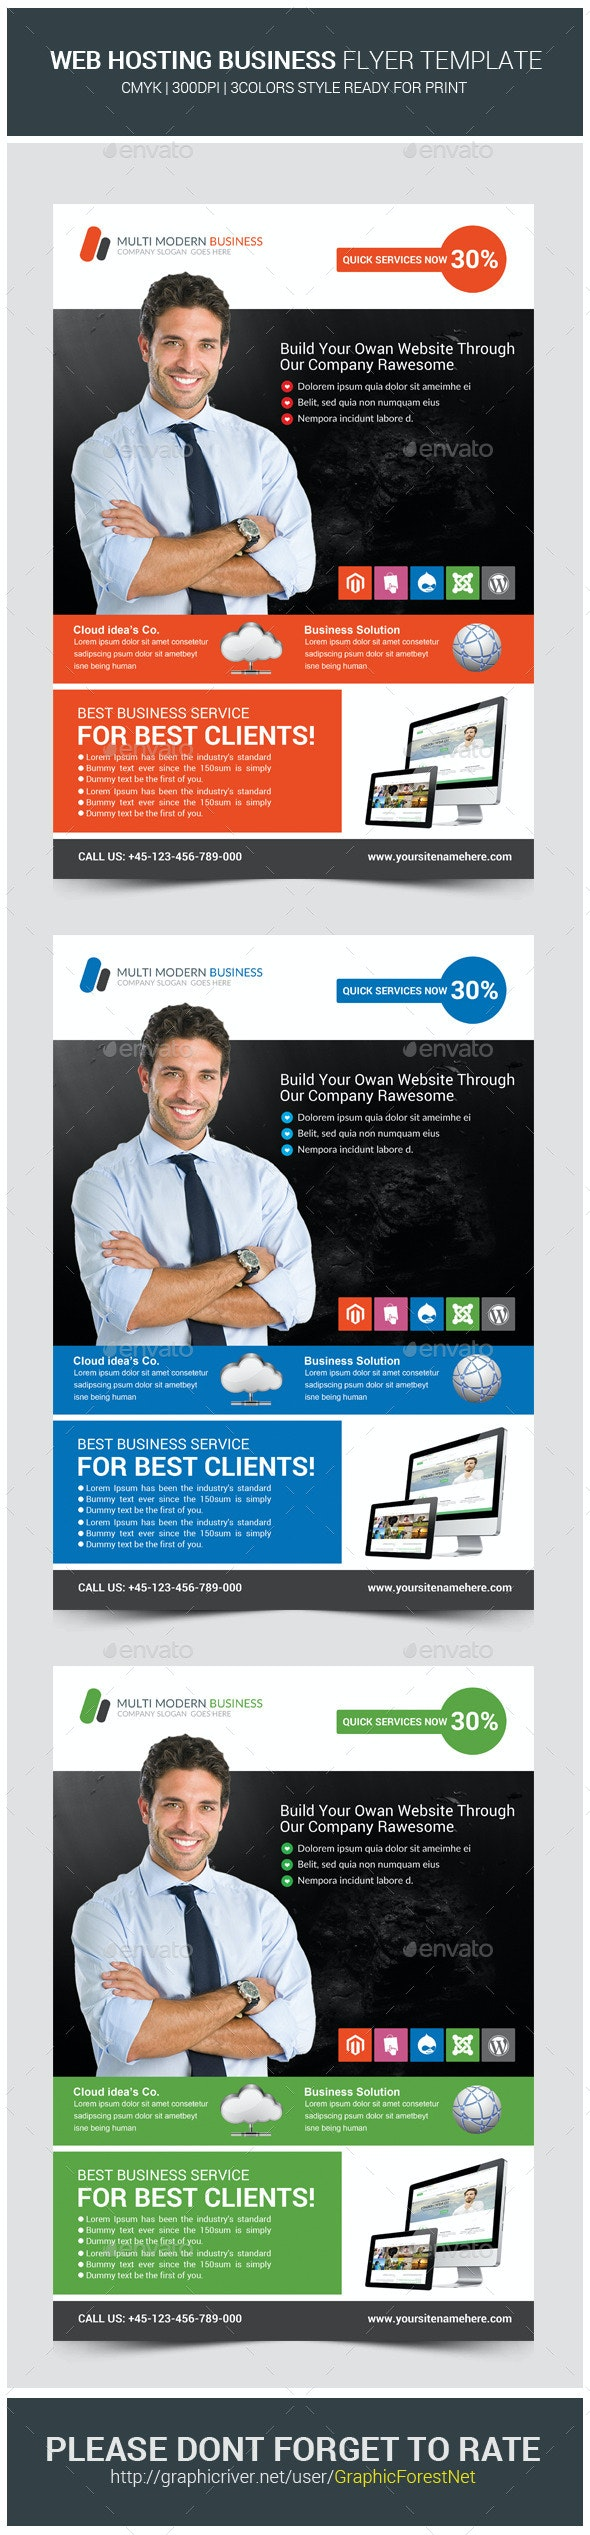 Web Hosting Business Flyer Templates - Corporate Flyers